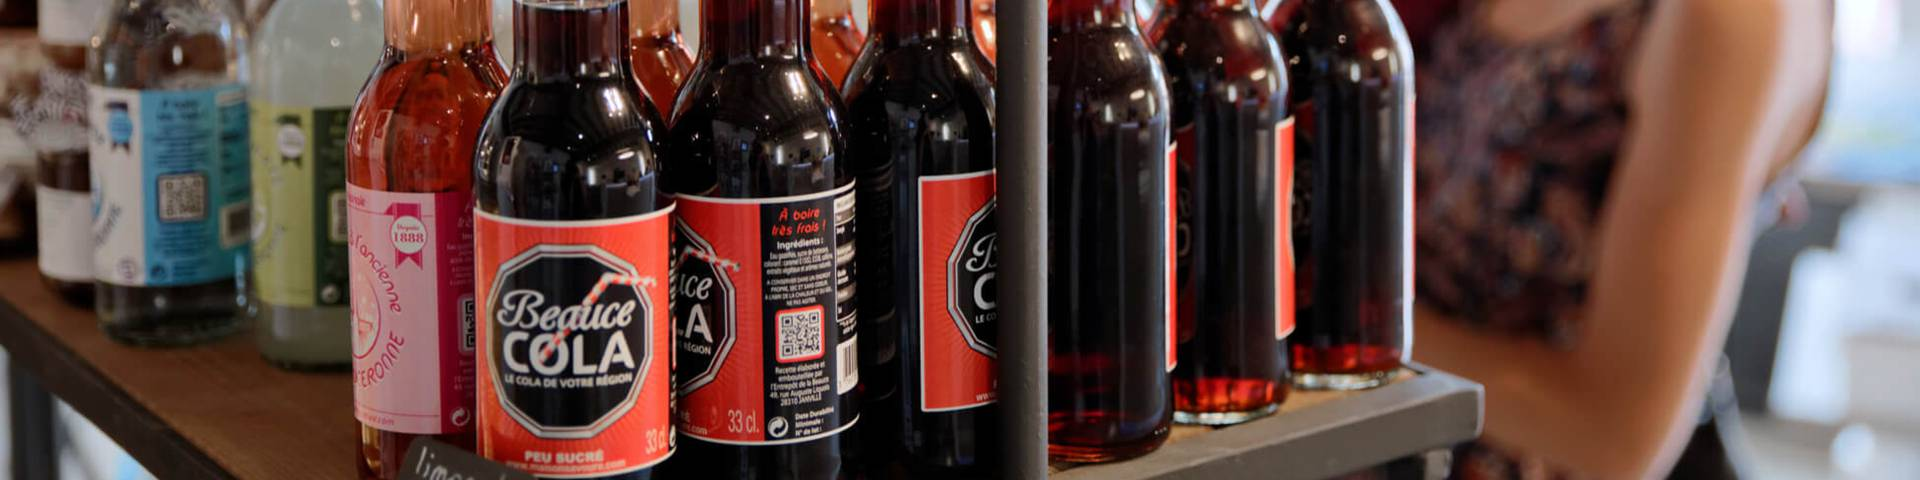 Beauce Cola at the Tourist Office boutique